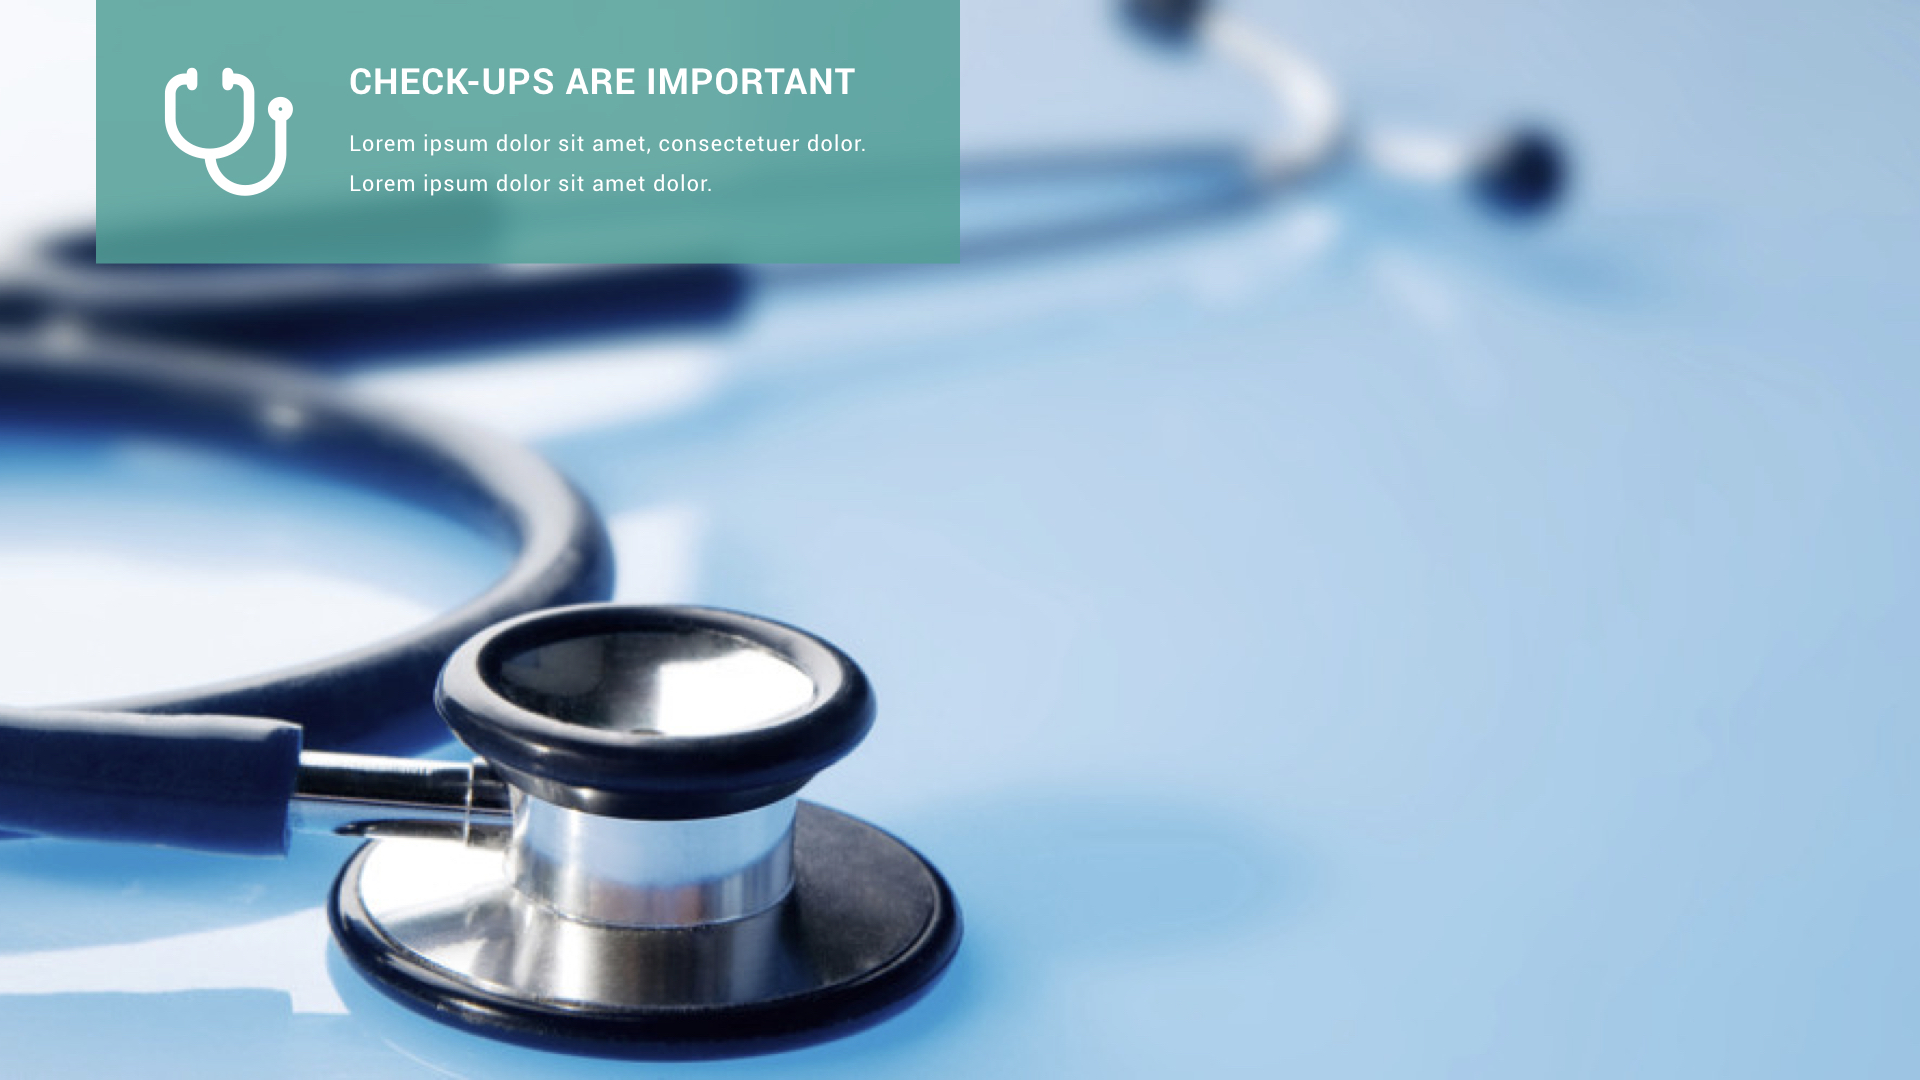 healthcare and medical keynote presentation template by